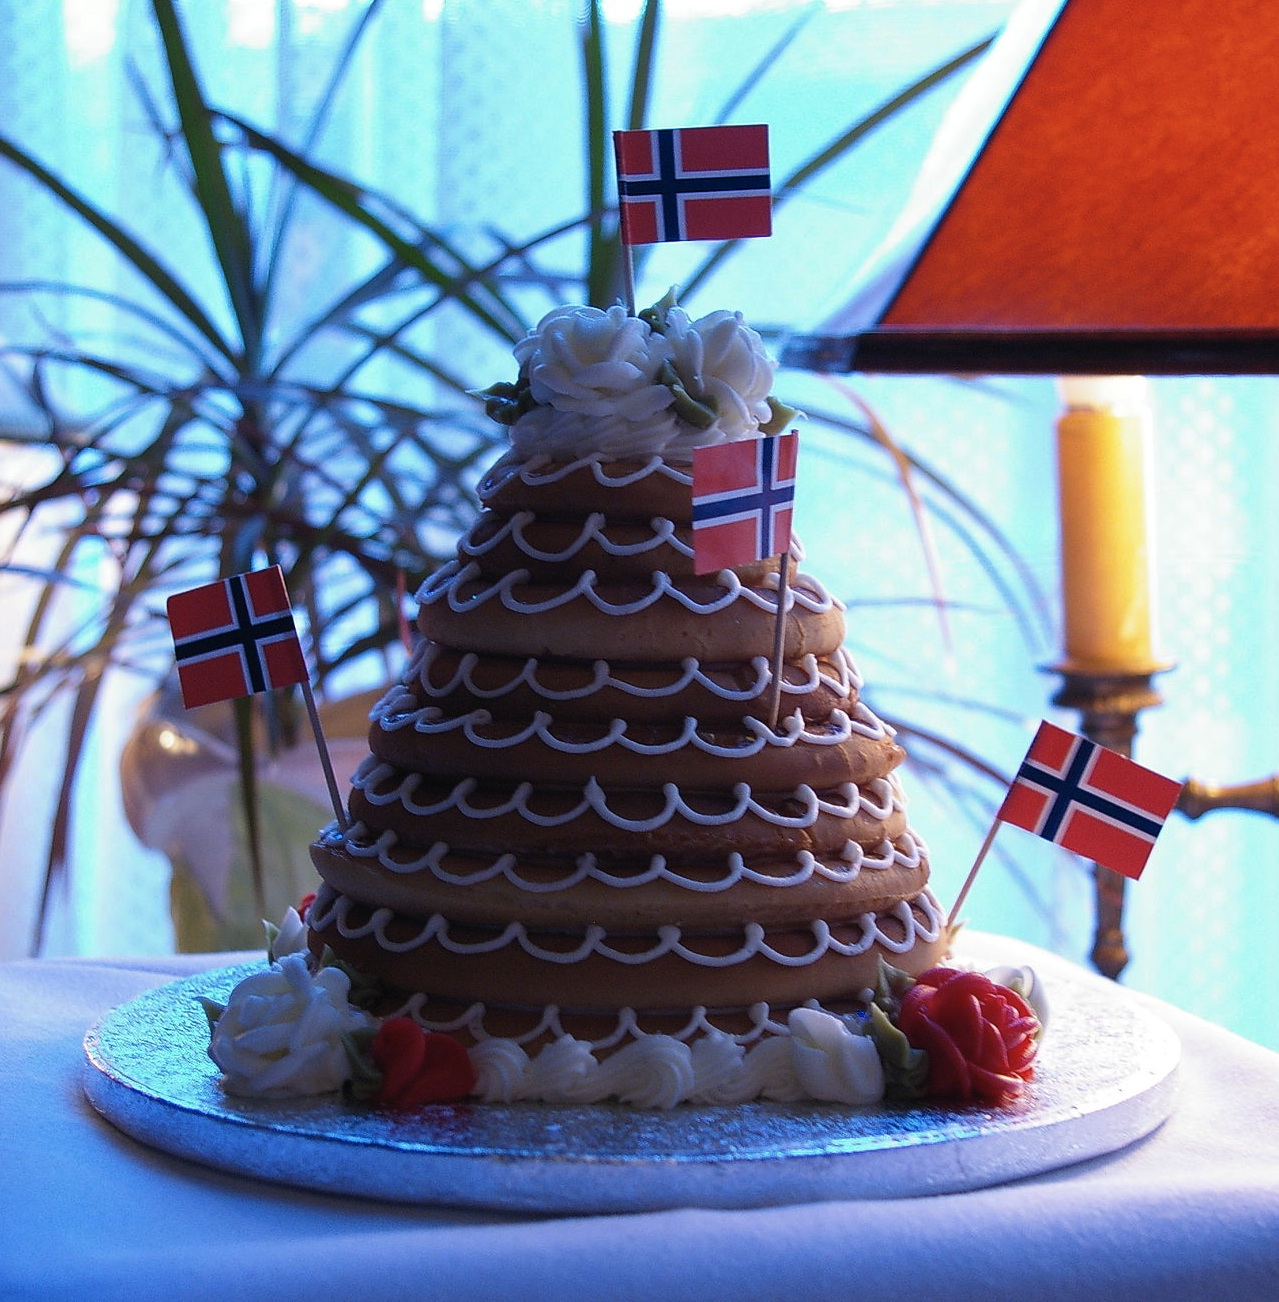 Sons Of Norway Blog: Make Your Own Norwegian Wedding Cake